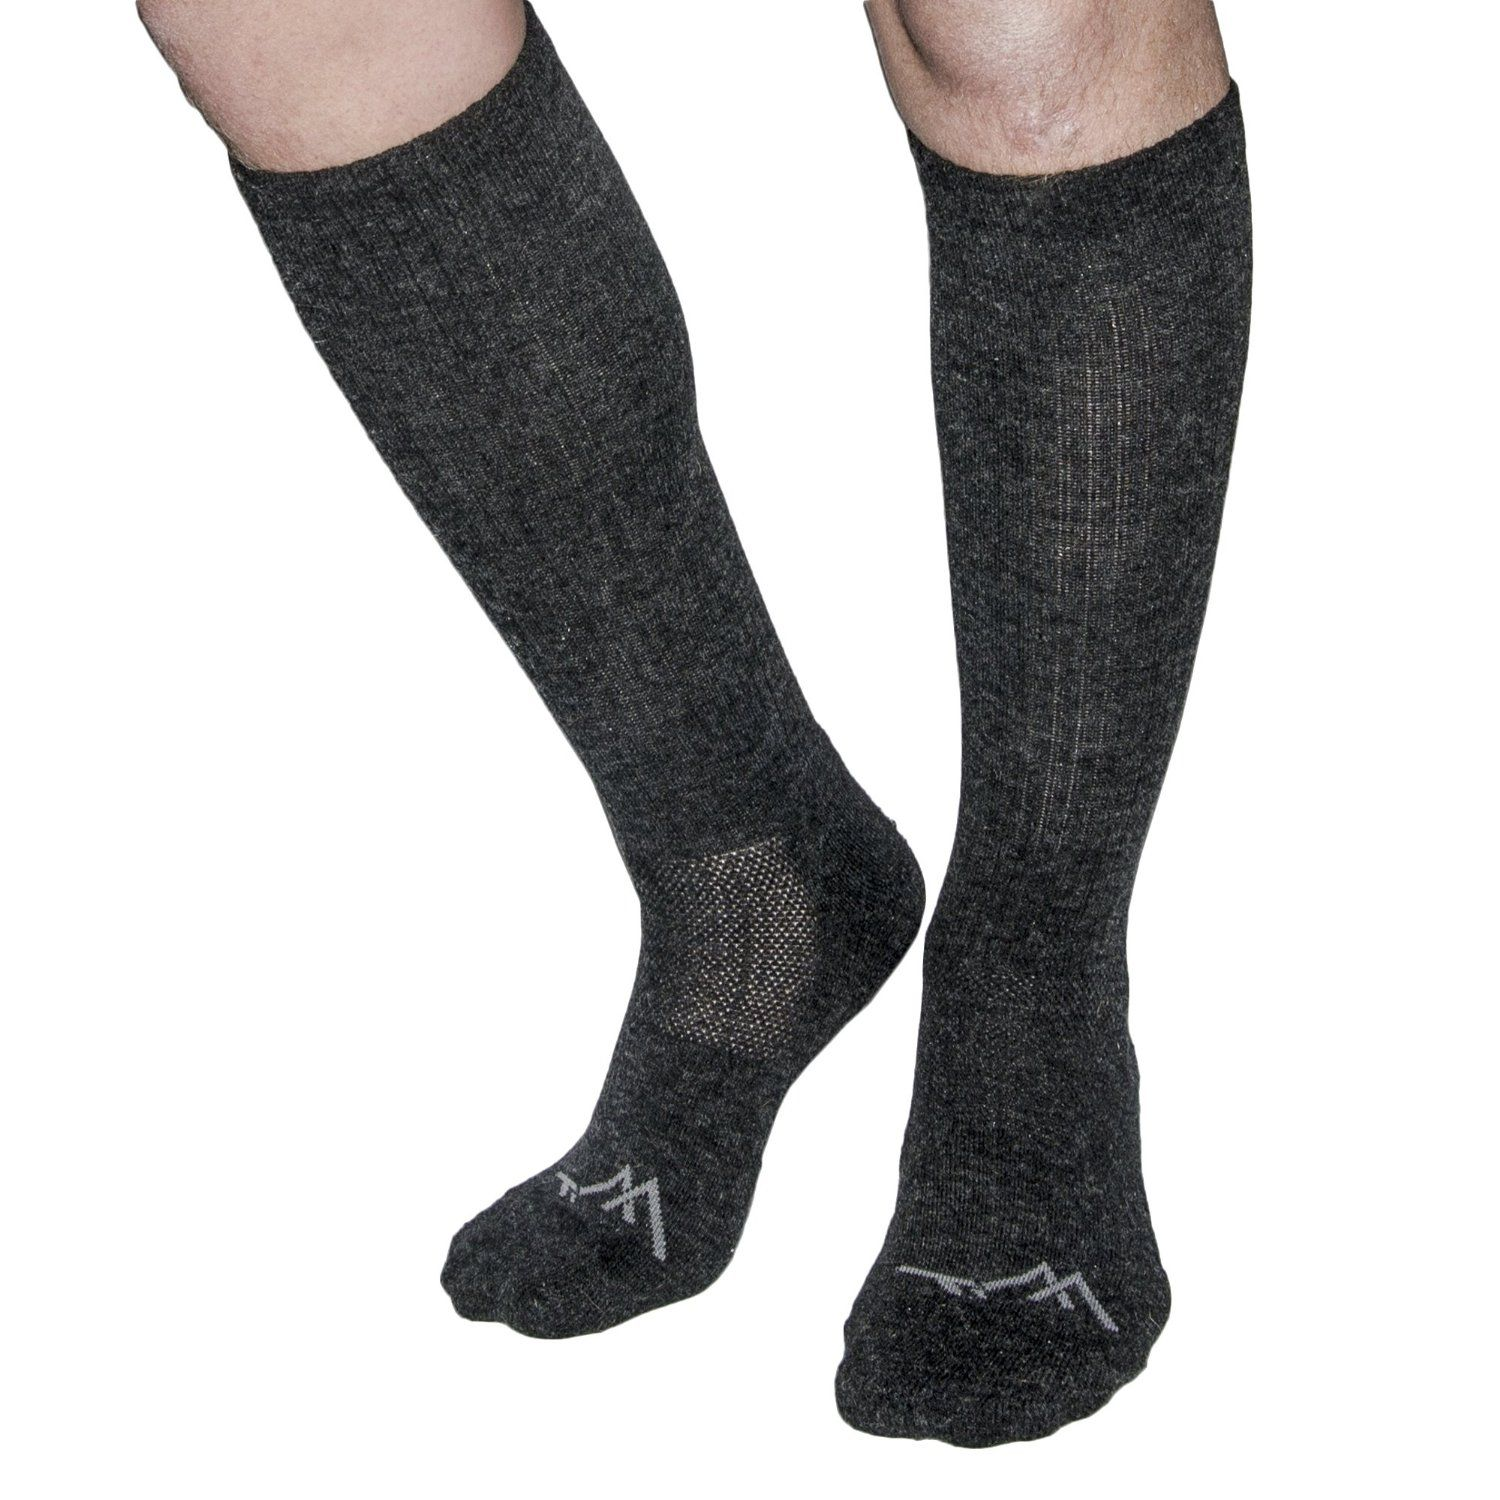 Amazon.com : ThrillTrek Merino Wool Graduated Compression Socks: Premium Medical Grade Knee-High Performance Stockings For Men & Women. Pain Relief From Hiking, Boots, Air Travel, Plantar Fasciitis, & More! : Sports & Outdoors